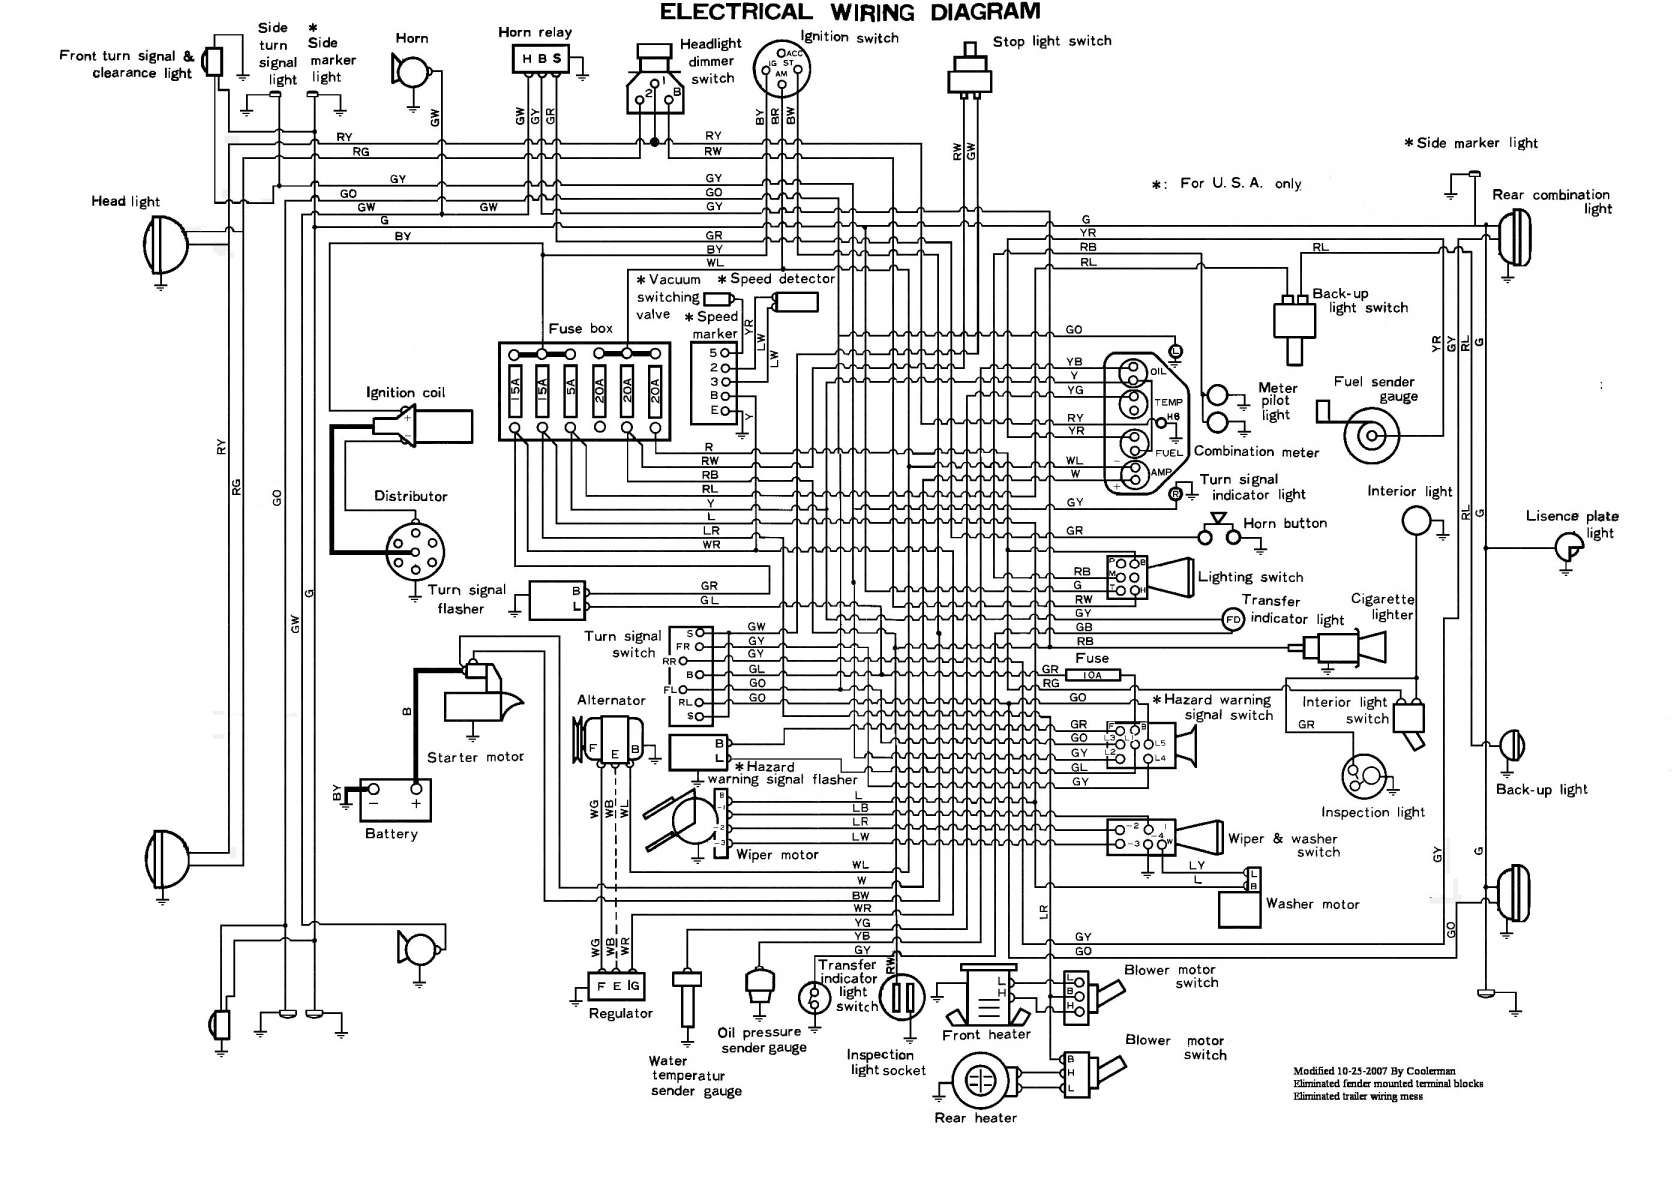 10 Hyundai I10 Electrical Wiring Diagram Electrical Wiring Diagram Electrical Diagram Diagram